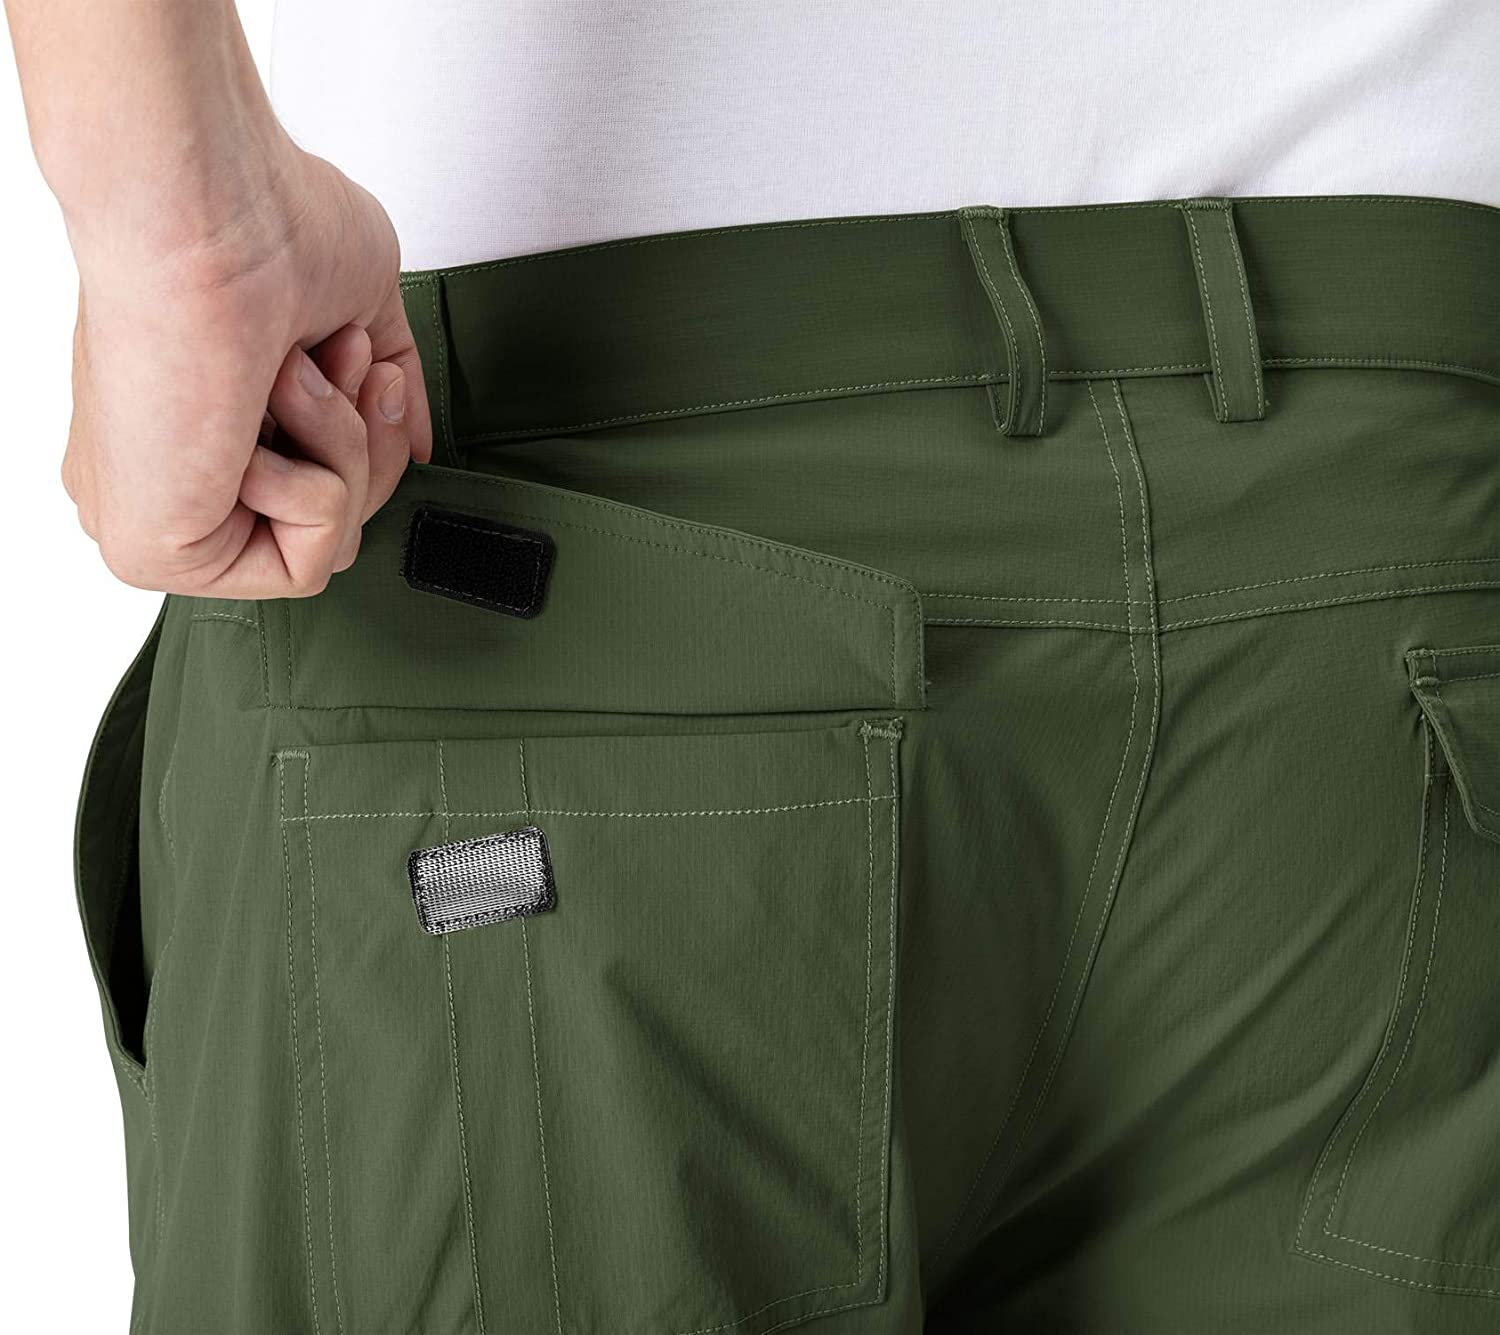 Rdruko Mens Stretchy Quick Dry Cargo Shorts Hiking Cycling Camping Travel Shorts with 6 Pockets